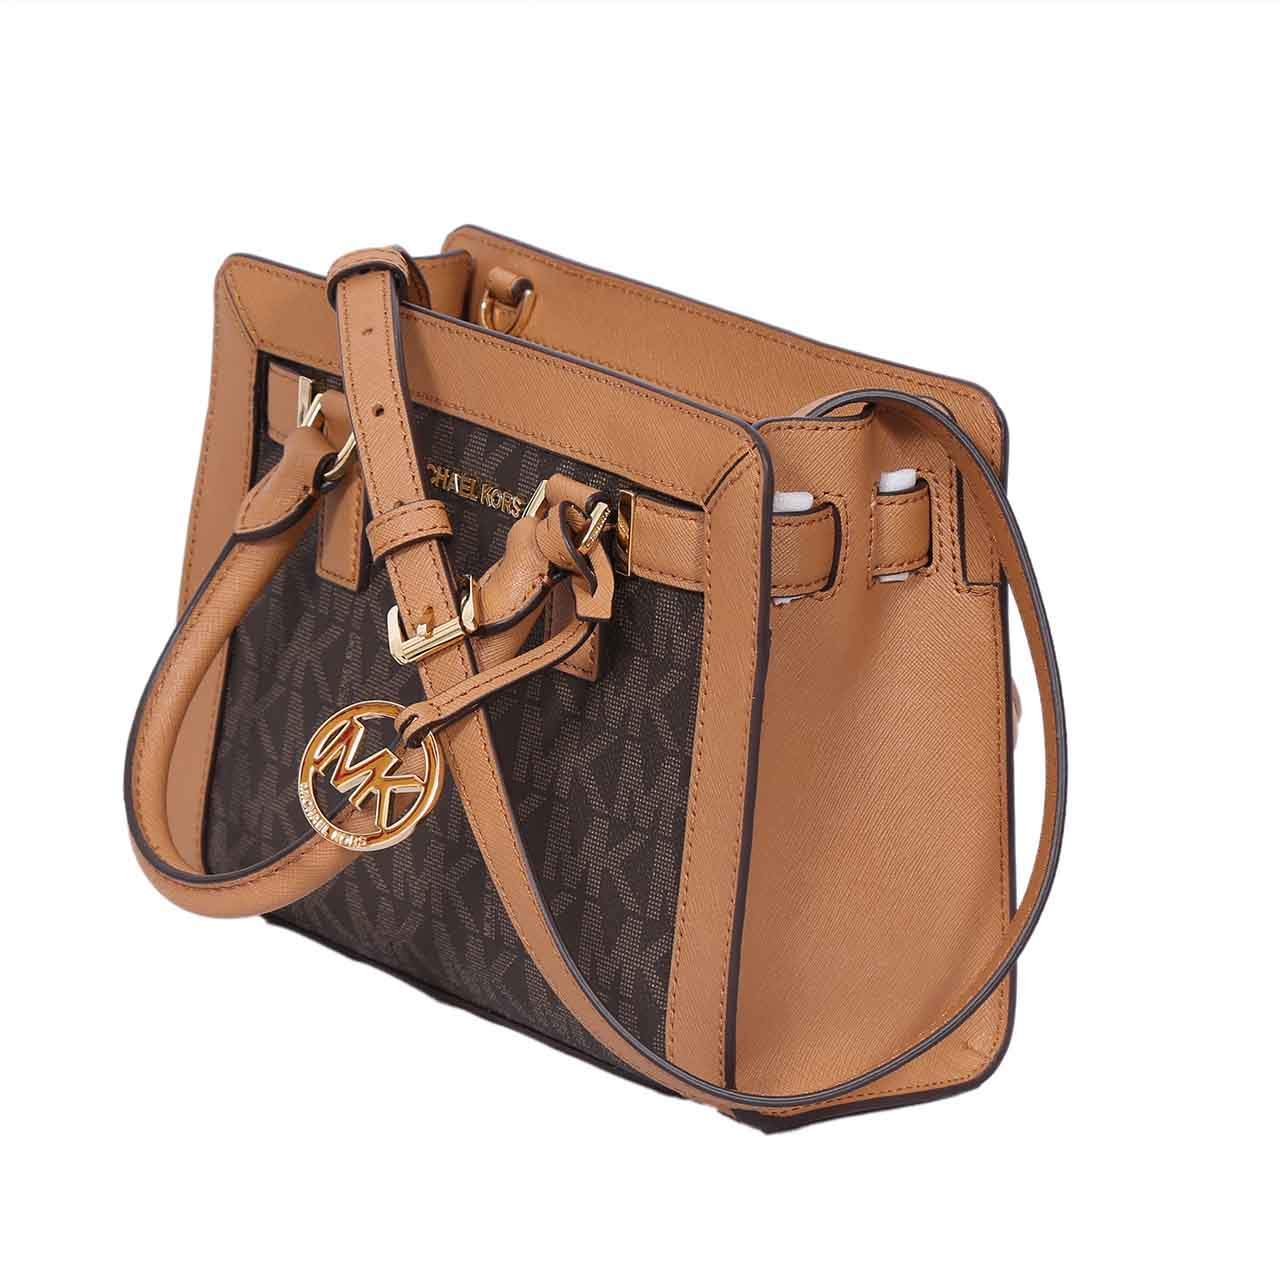 73619ed9661c ... Michael Kors Dillon Monogram Small Satchel /Crossbody Bag Brown ...